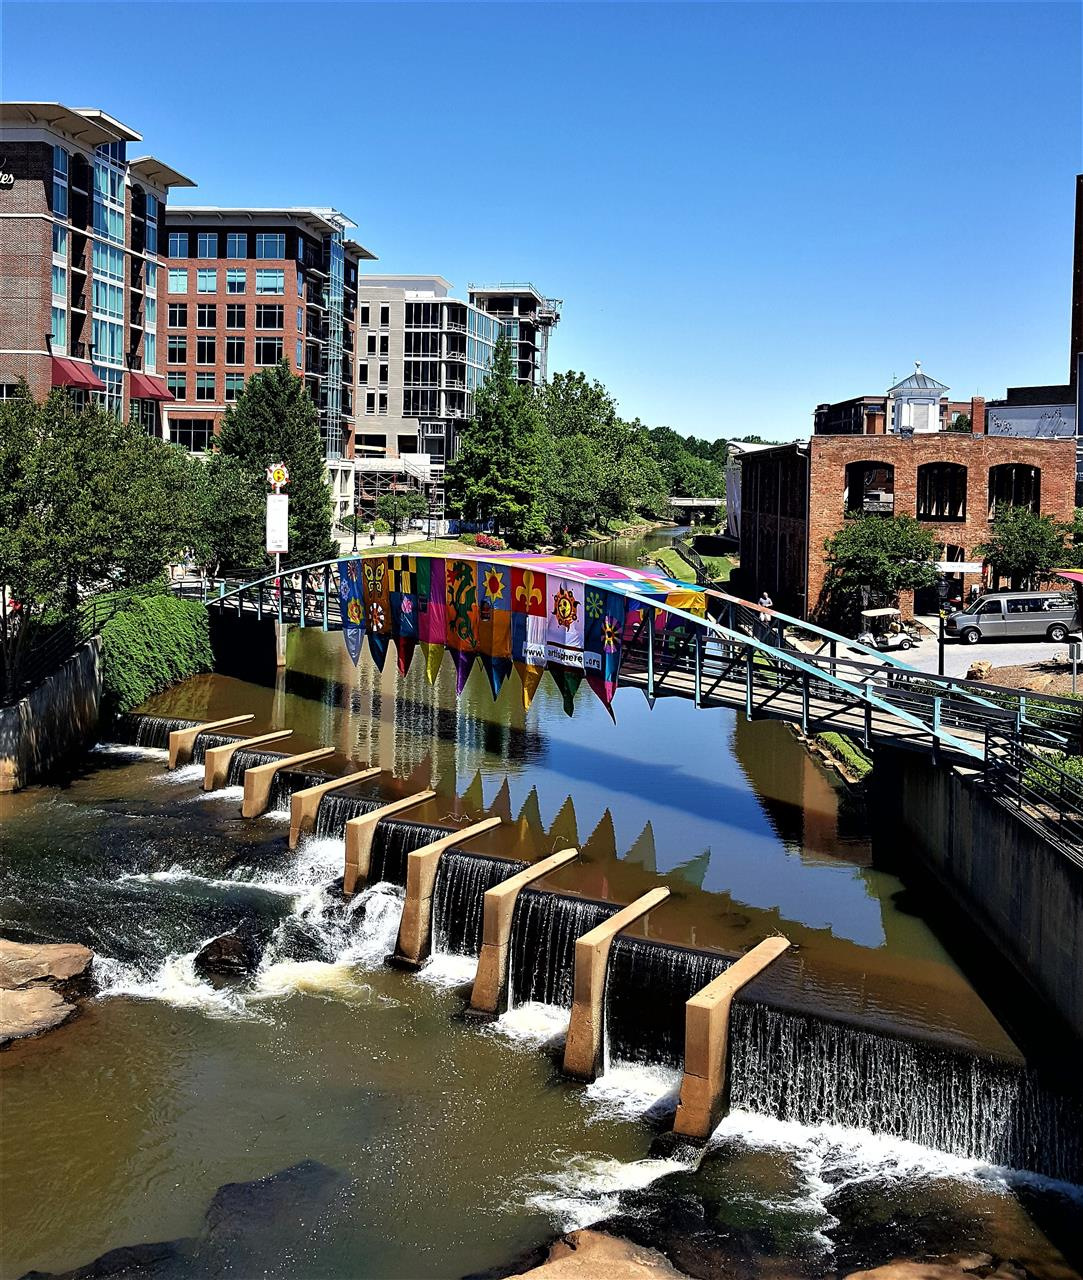 Reedy River Walking Bridge, Greenville SC, all decked out for Artisphere!